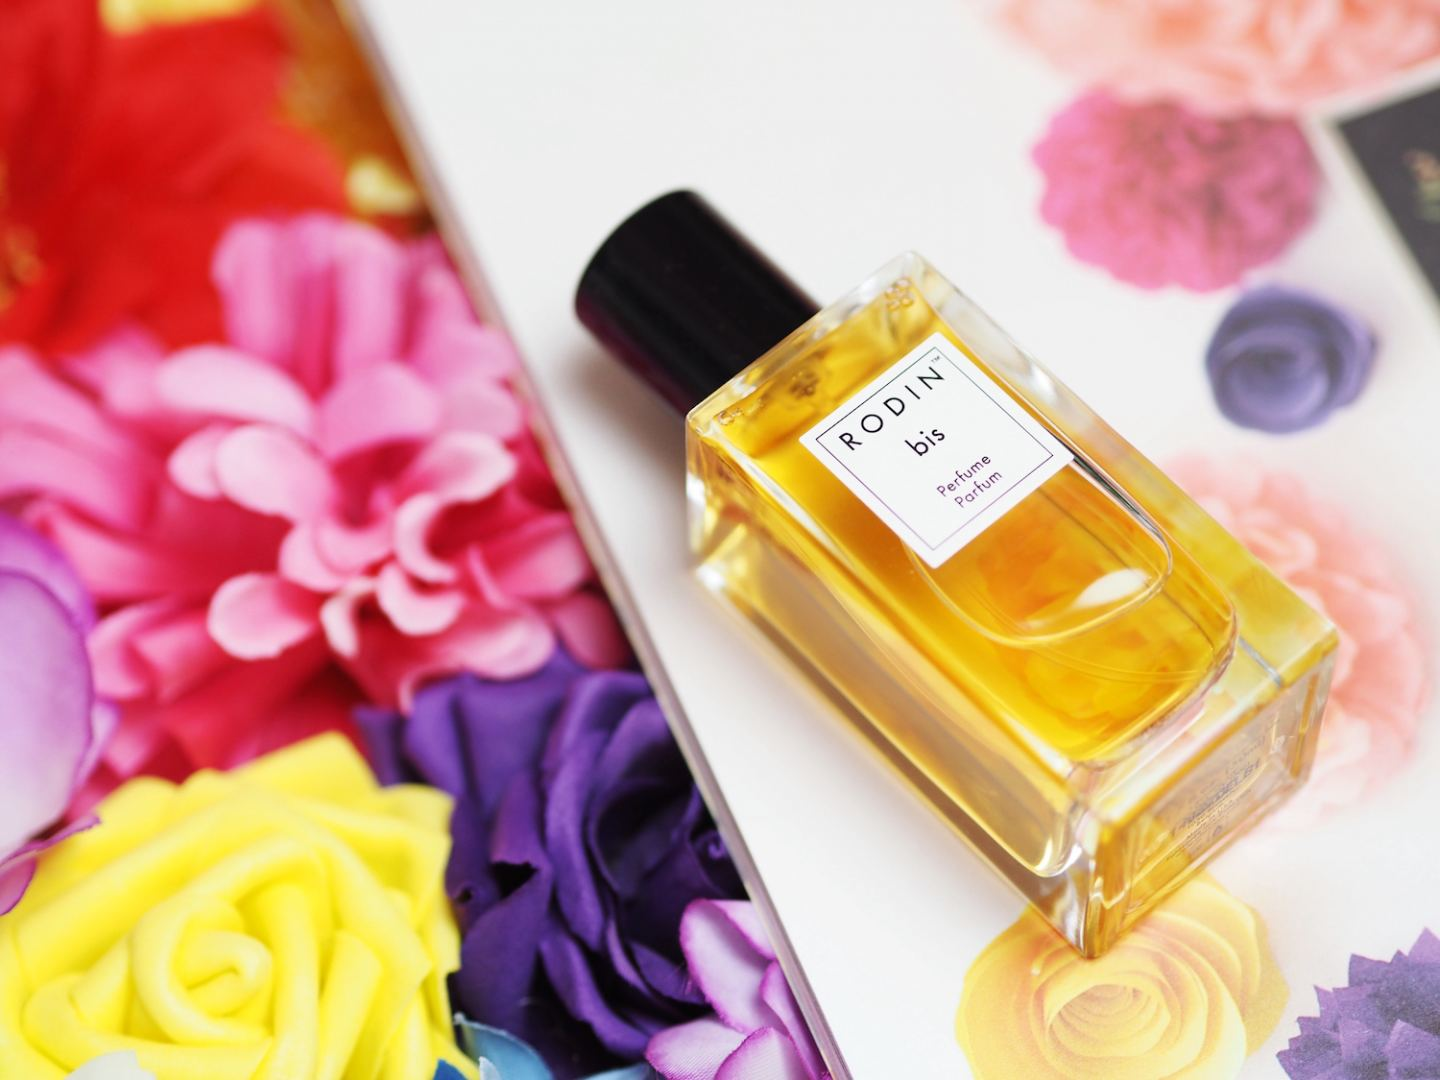 RODIN bis perfume fragrance review